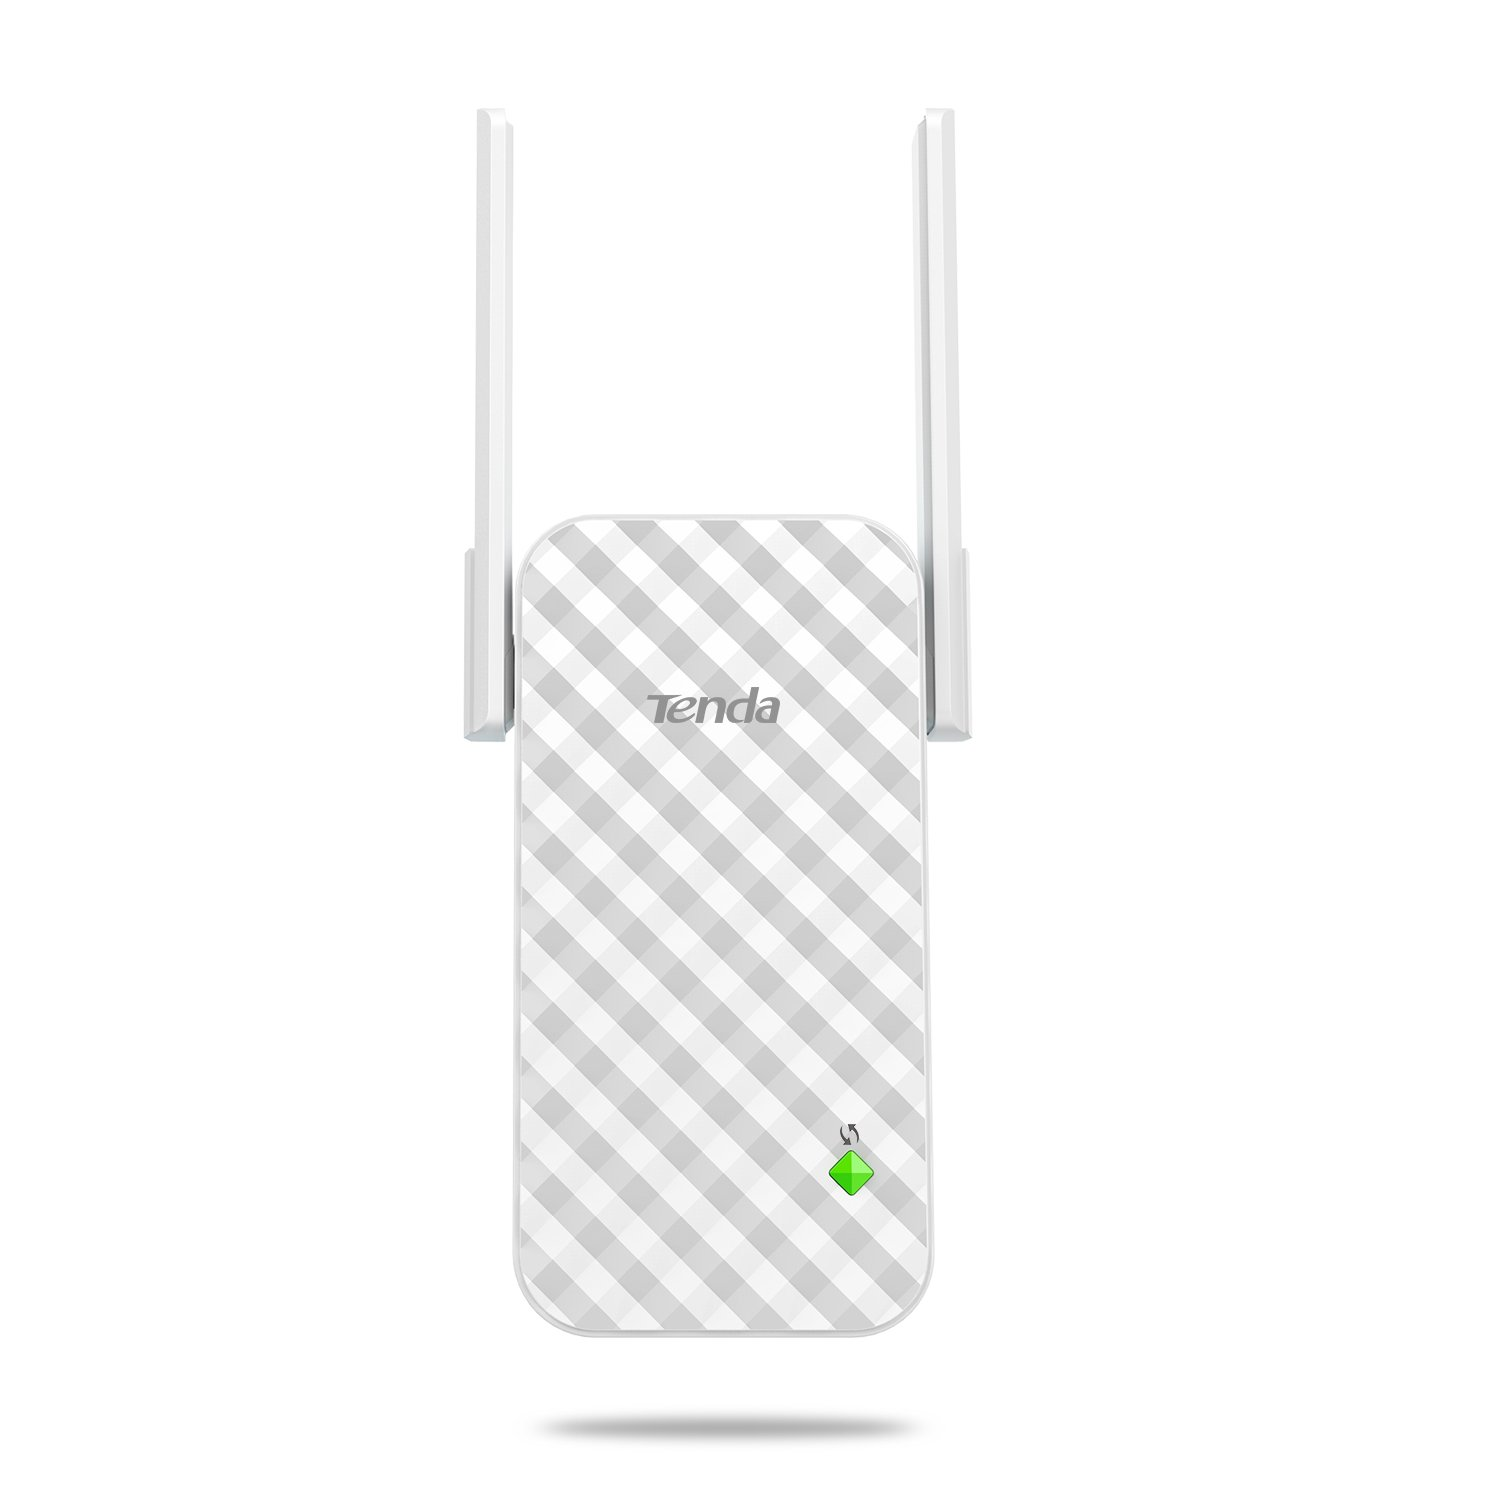 Tenda N300 WiFi Range Extender with 2 External Antennas, One Button Extension, Smart Signal LED and Universal Compatibilityifi(A9)